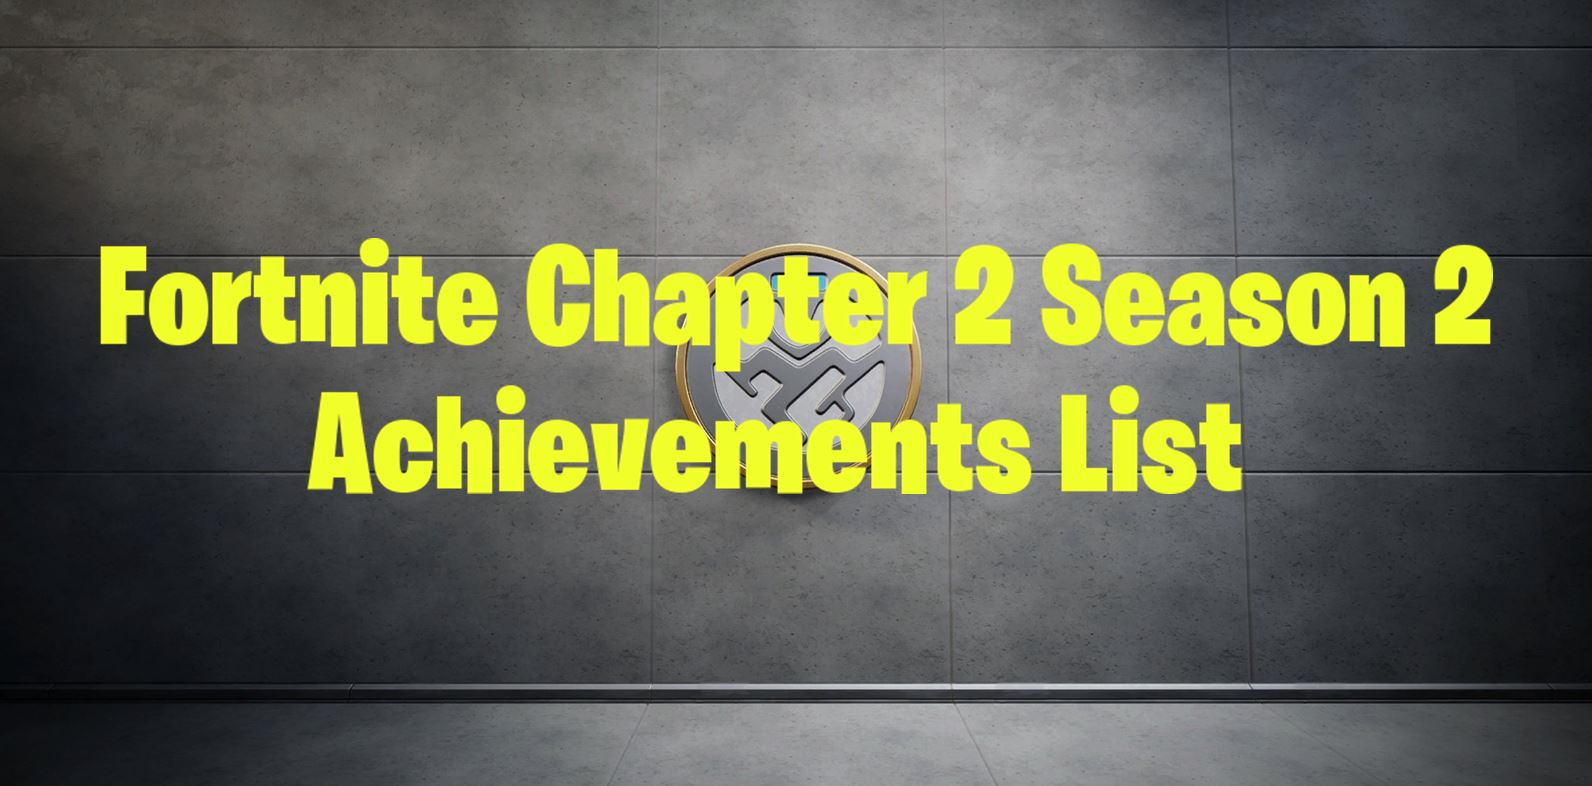 Fortnite Chapter 2 Season 2 Achievements List